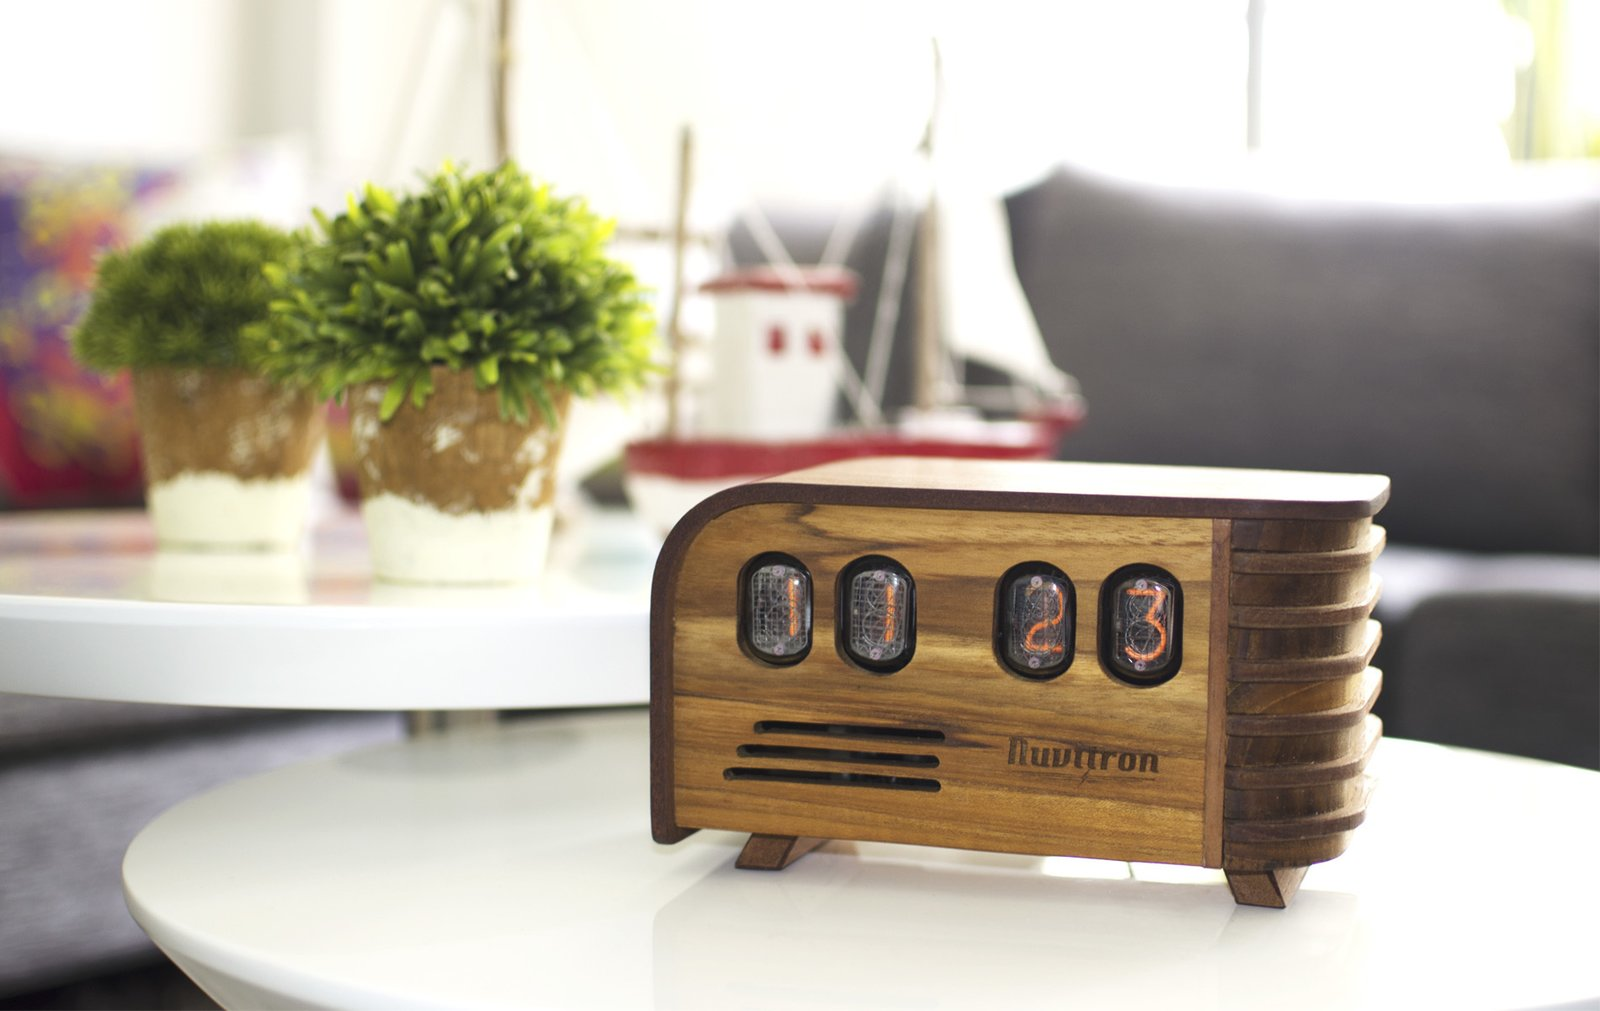 Photo 1 of 2 in The Vintage Nixie Tube Clock